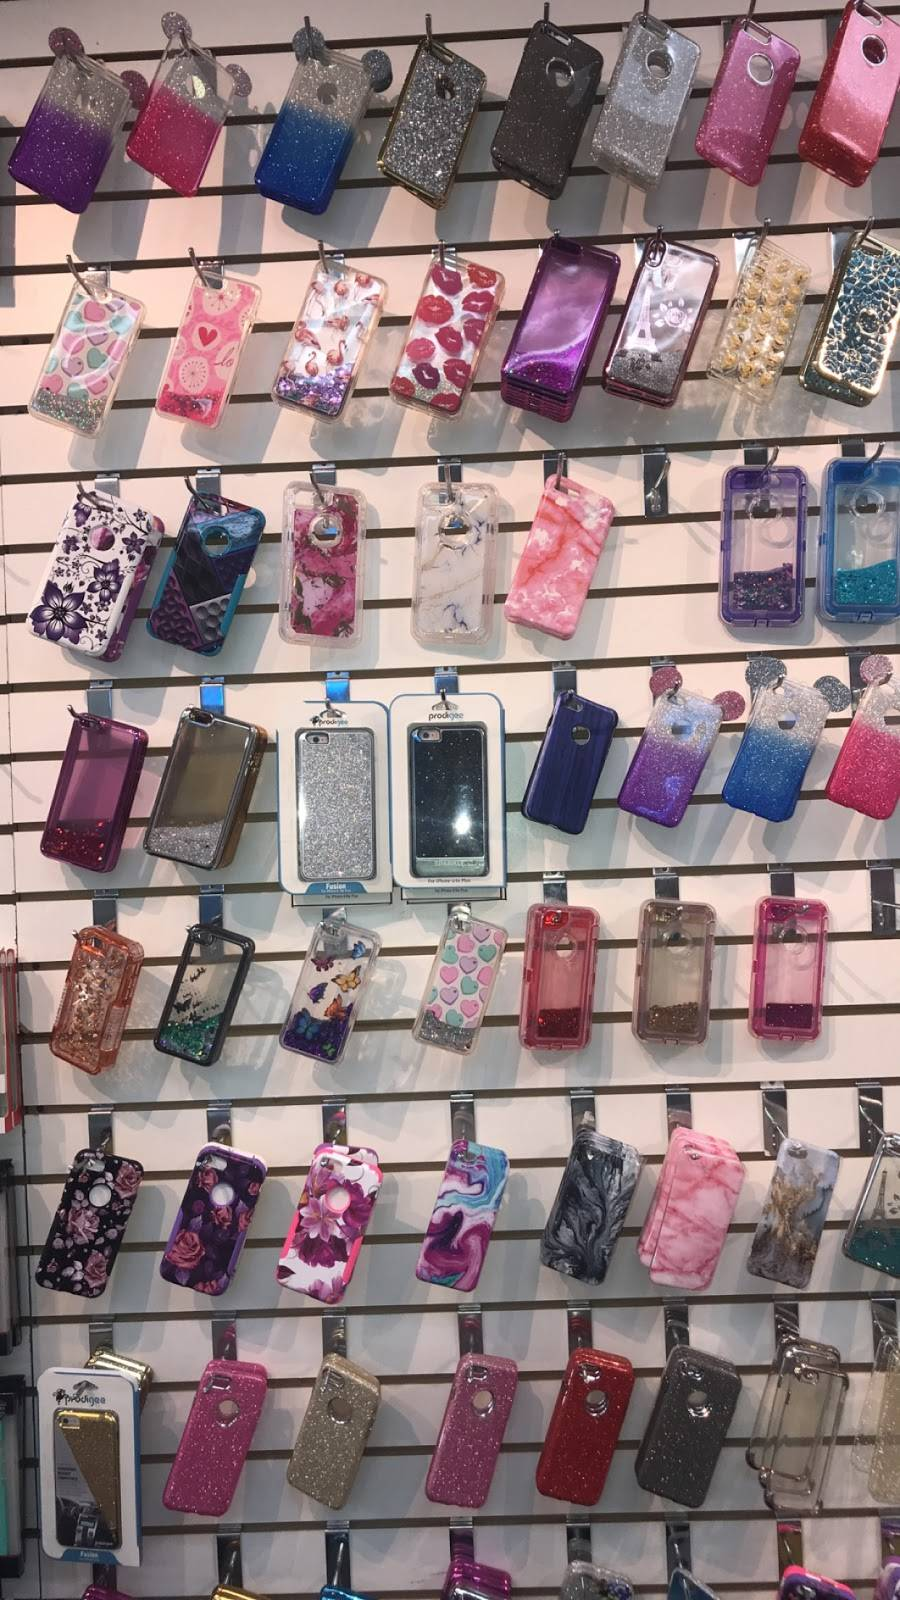 419 Cell Phone Repair - store  | Photo 7 of 9 | Address: 1251 S Reynolds Rd, Toledo, OH 43615, USA | Phone: (419) 720-7628